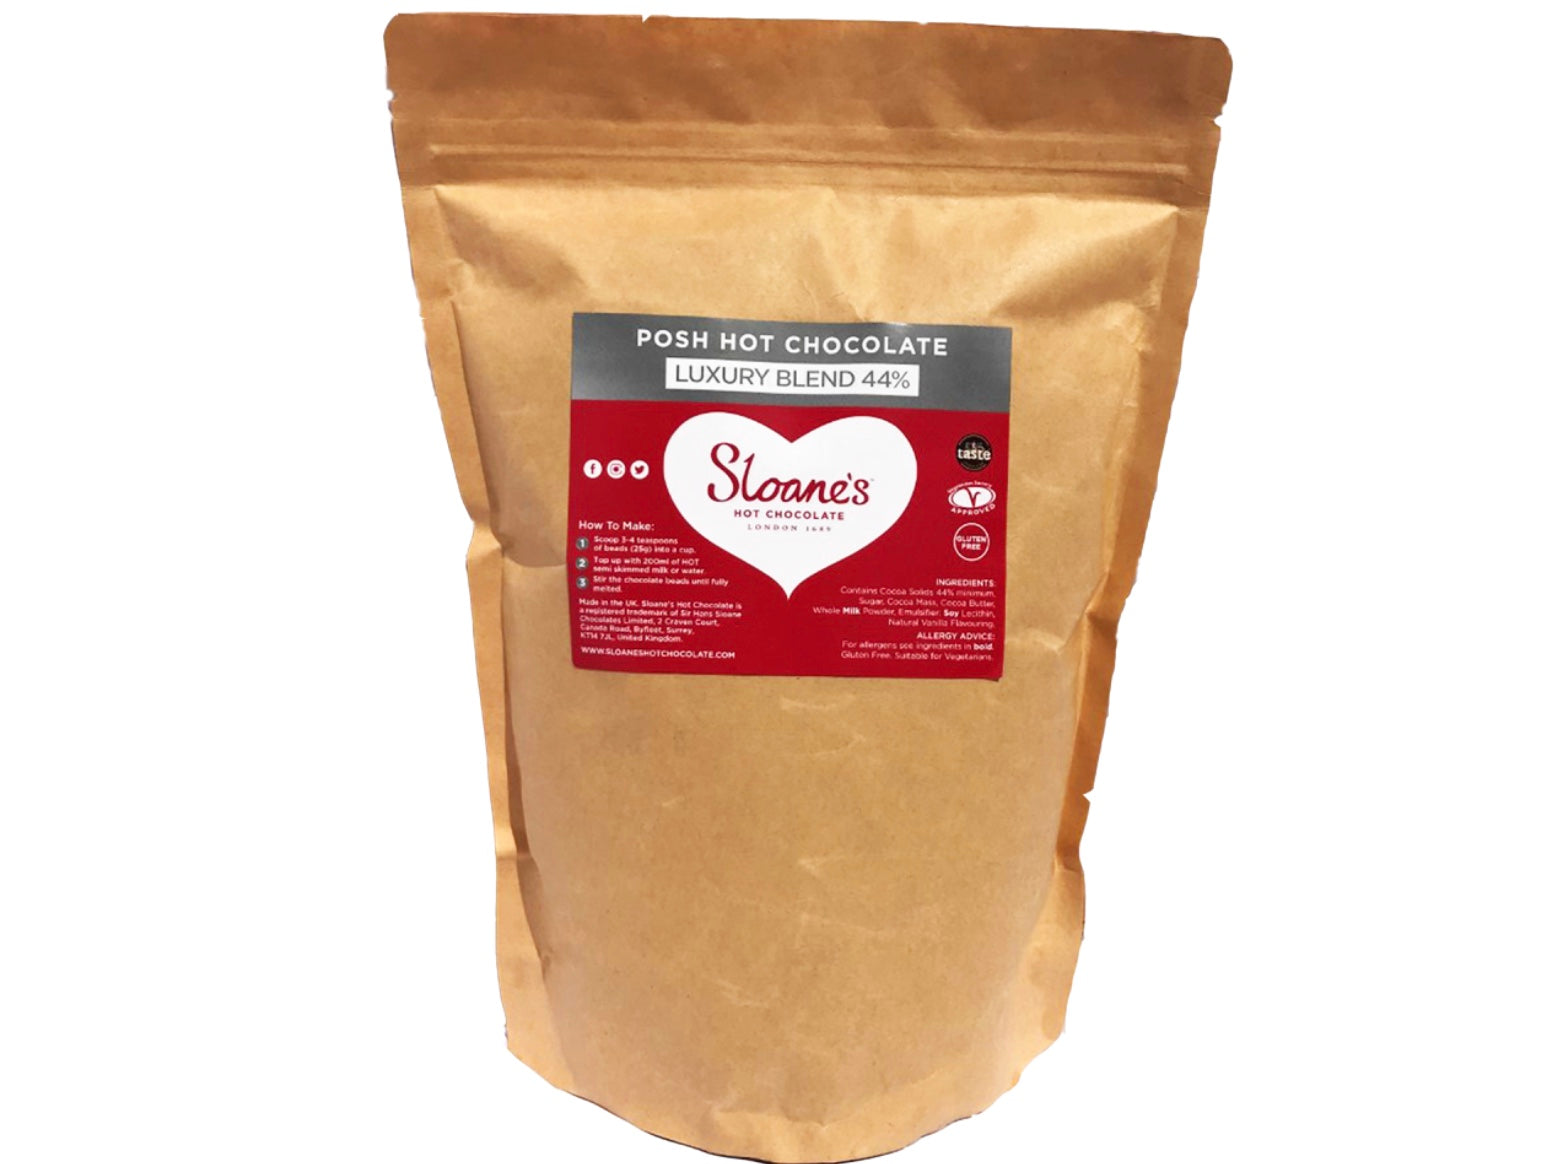 Luscious Luxury Blend 44% 1kg Refill pack